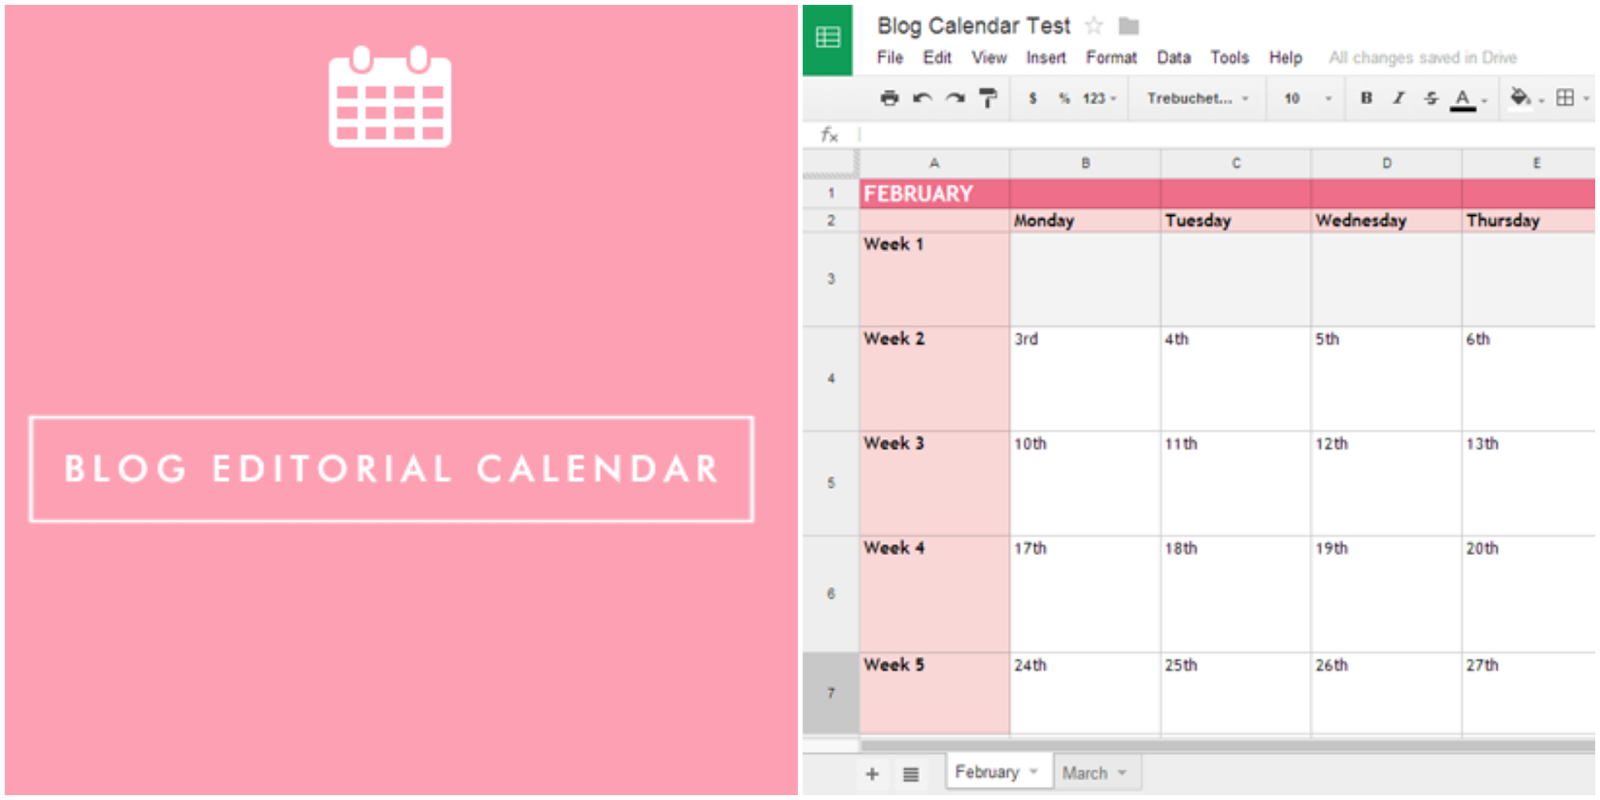 Blog Editorial Calendar How To